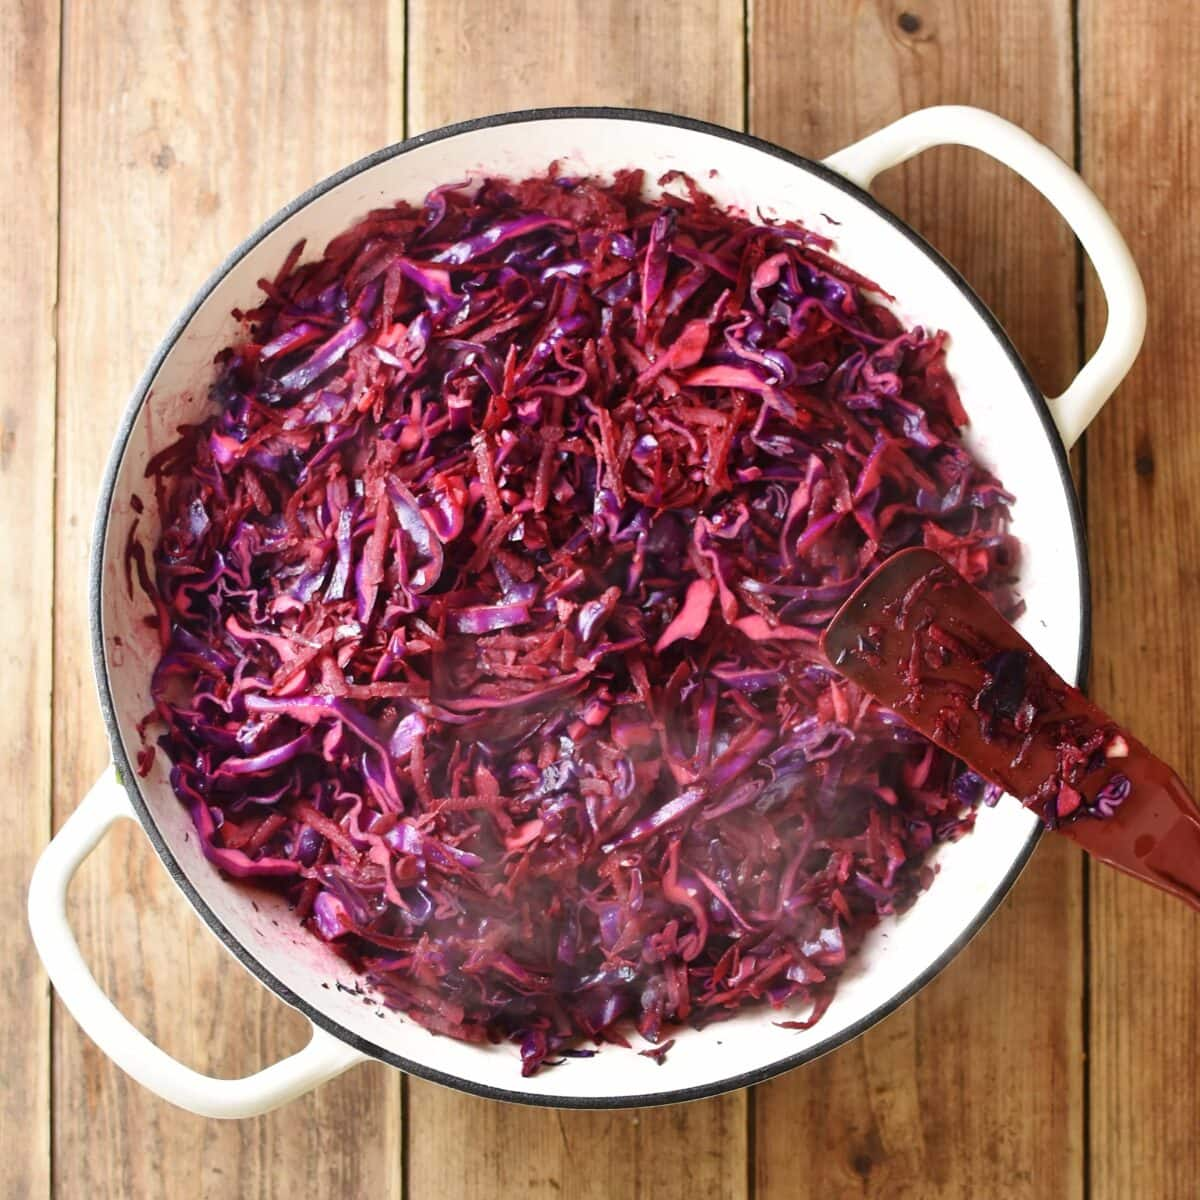 Braise shredded red cabbage with red spatula in large white pan.